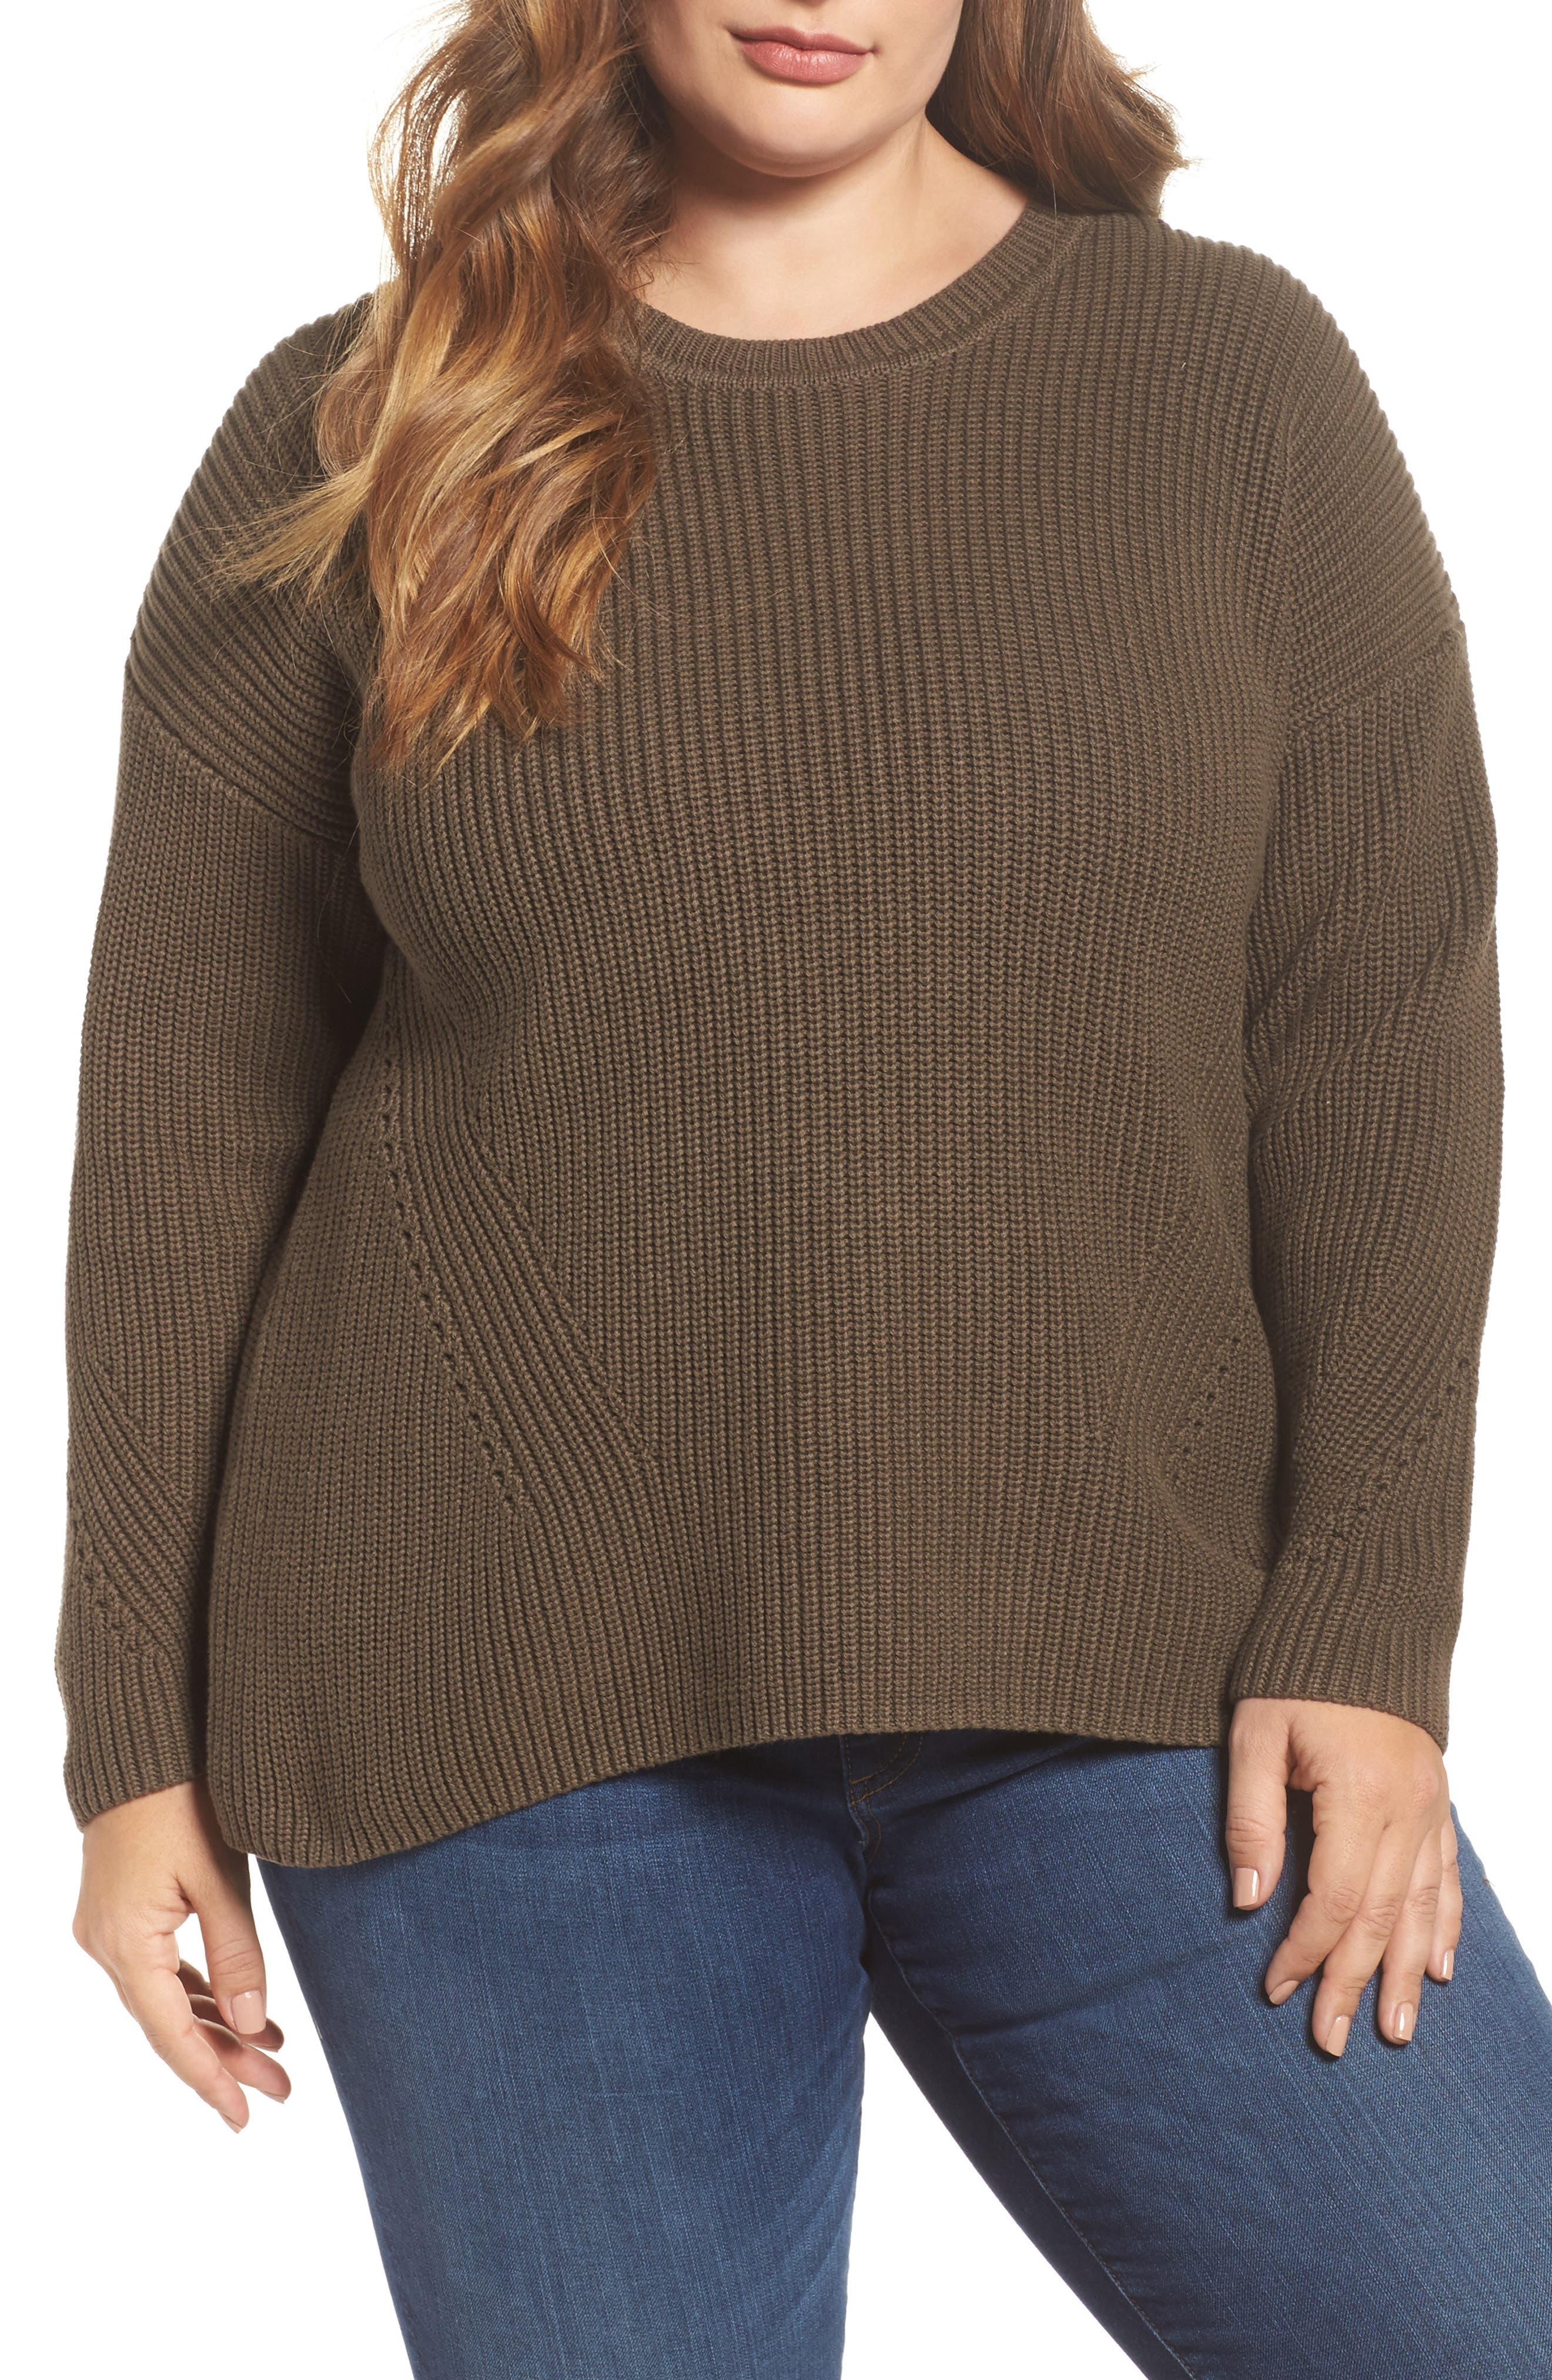 Main Image - Lucky Brand Lace-Up Back Sweater